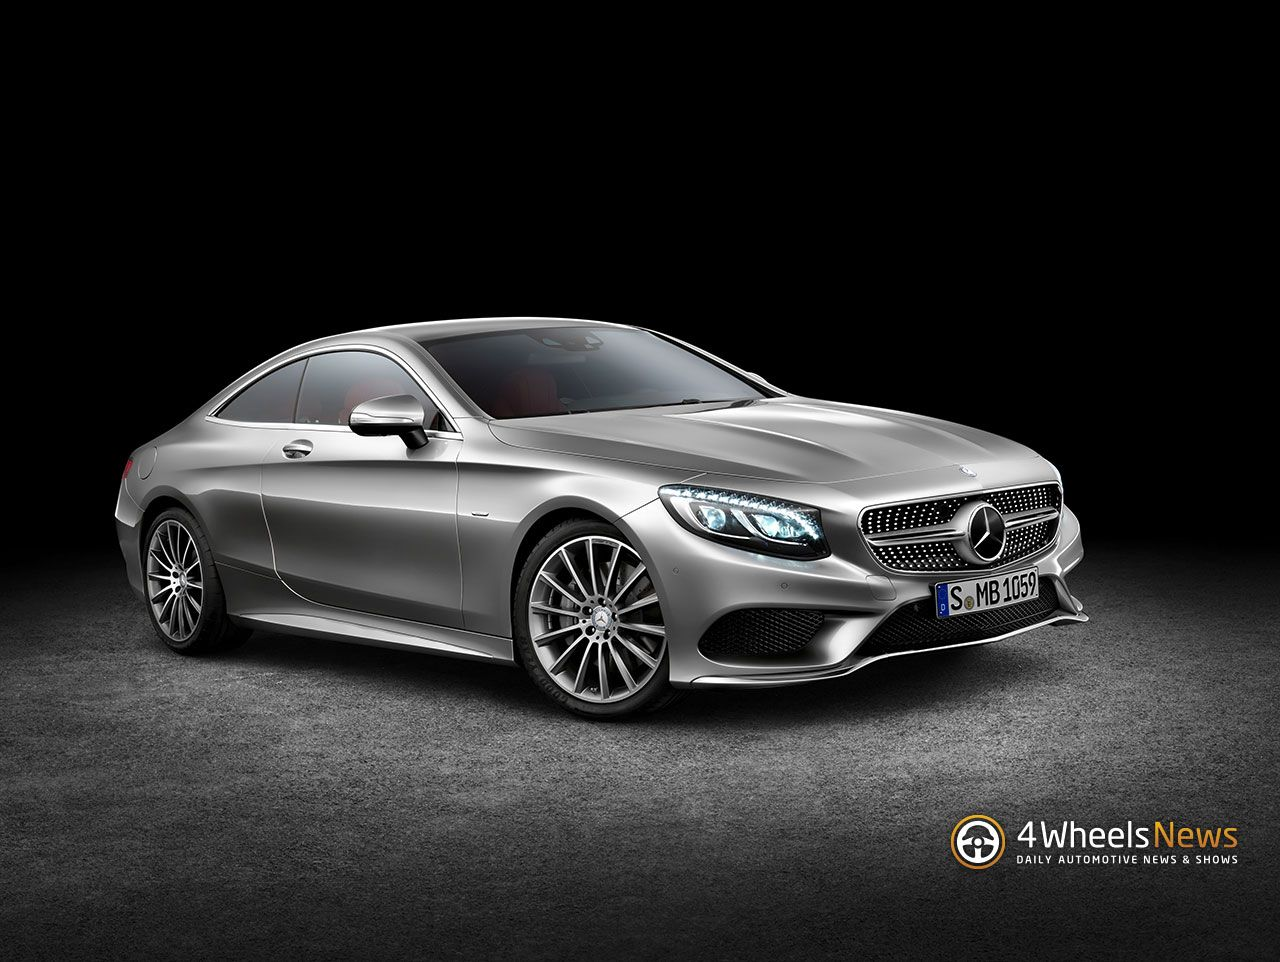 Official: 2015 #MercedesBenz S-Class Coupe redefines the luxury concept  http://www.4wheelsnews.com/official-2015-mercedes-benz-s-class-coupe-redefines-the-luxury-concept/